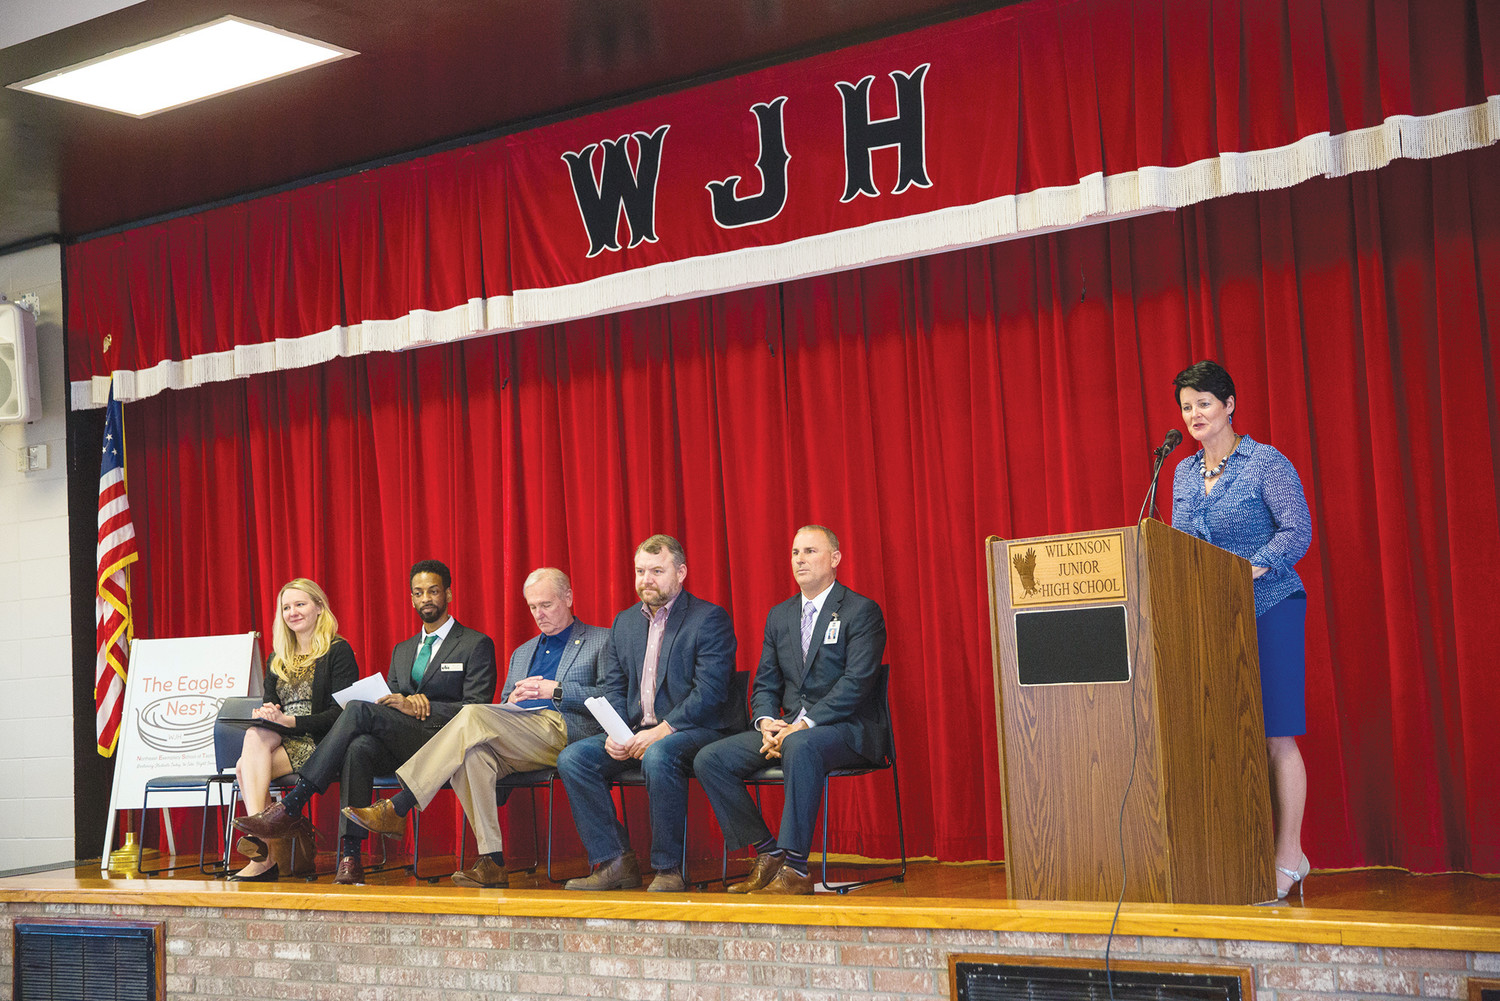 Wilkinson Junior High School Principal Christina Cornwell introduces speakers last week at the school during an announcement that Wilkinson will be the first state-funded Community Partnership School in Clay County.